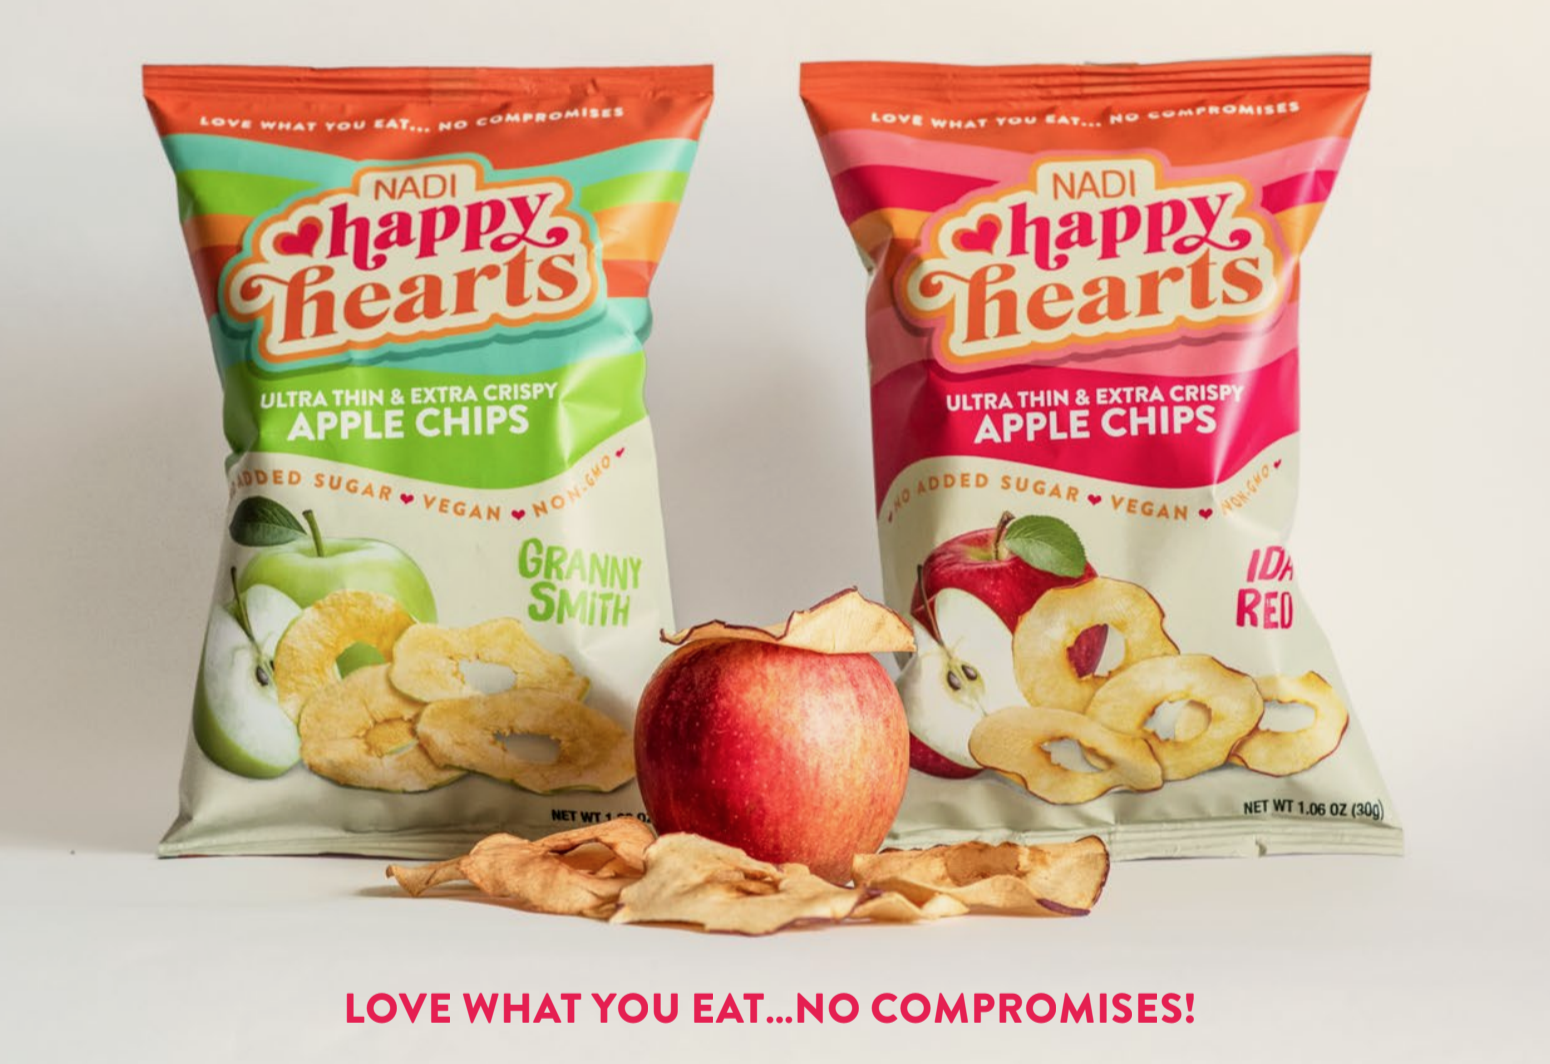 NADI Introduces Happy Hearts Apple Chips